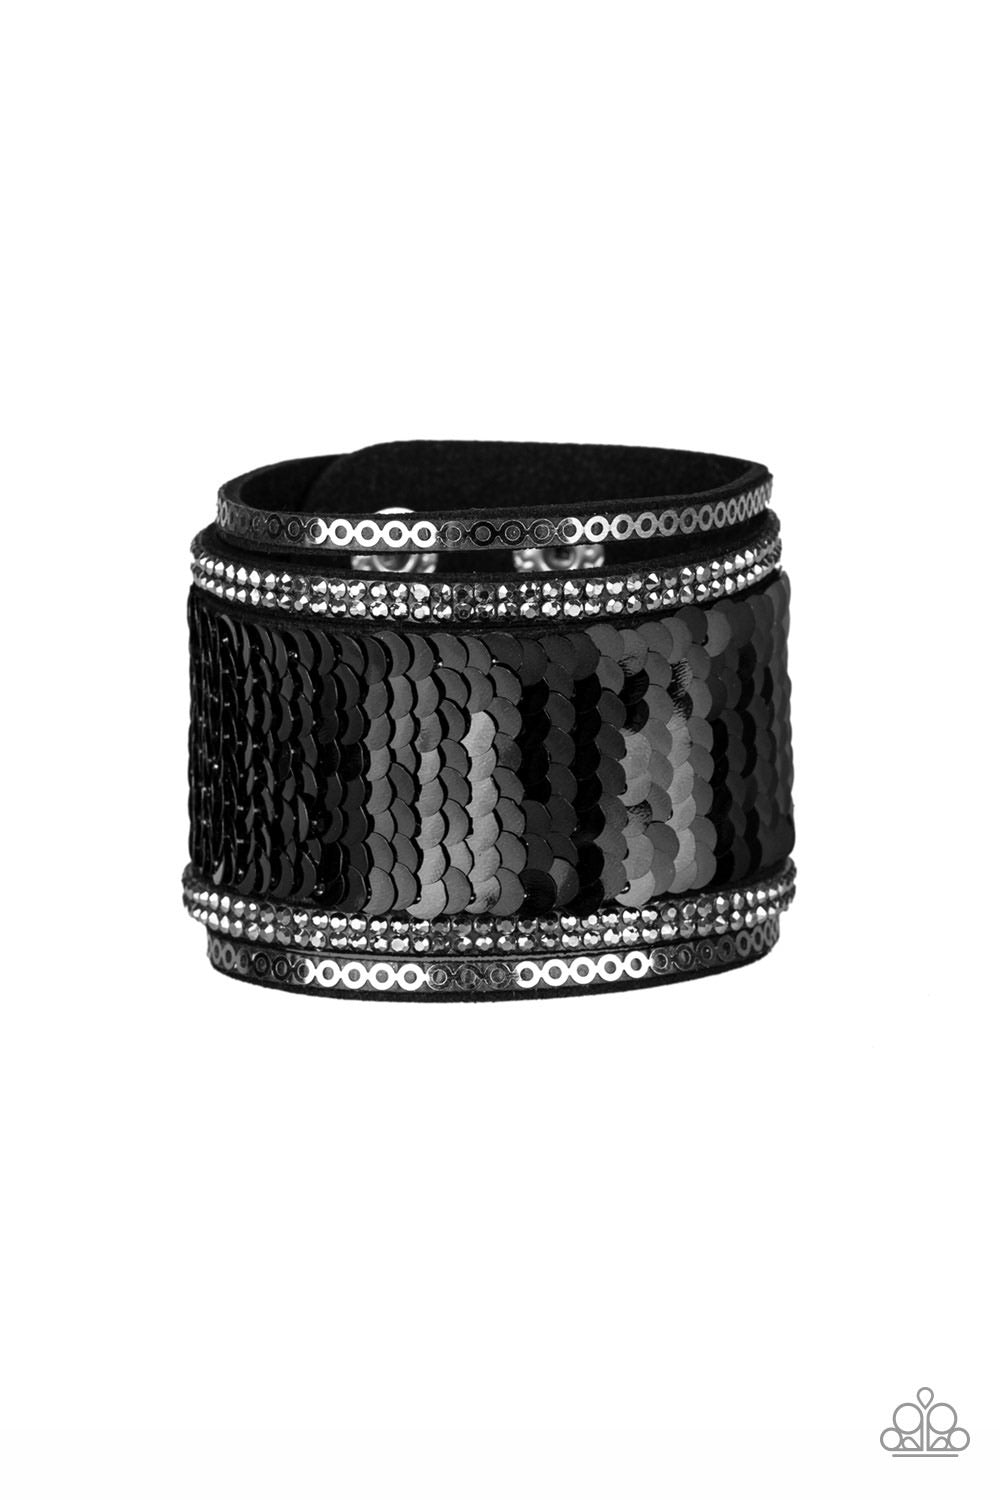 Paparazzi Accessories:  Heads Or MERMAID Tails - Black (1720)